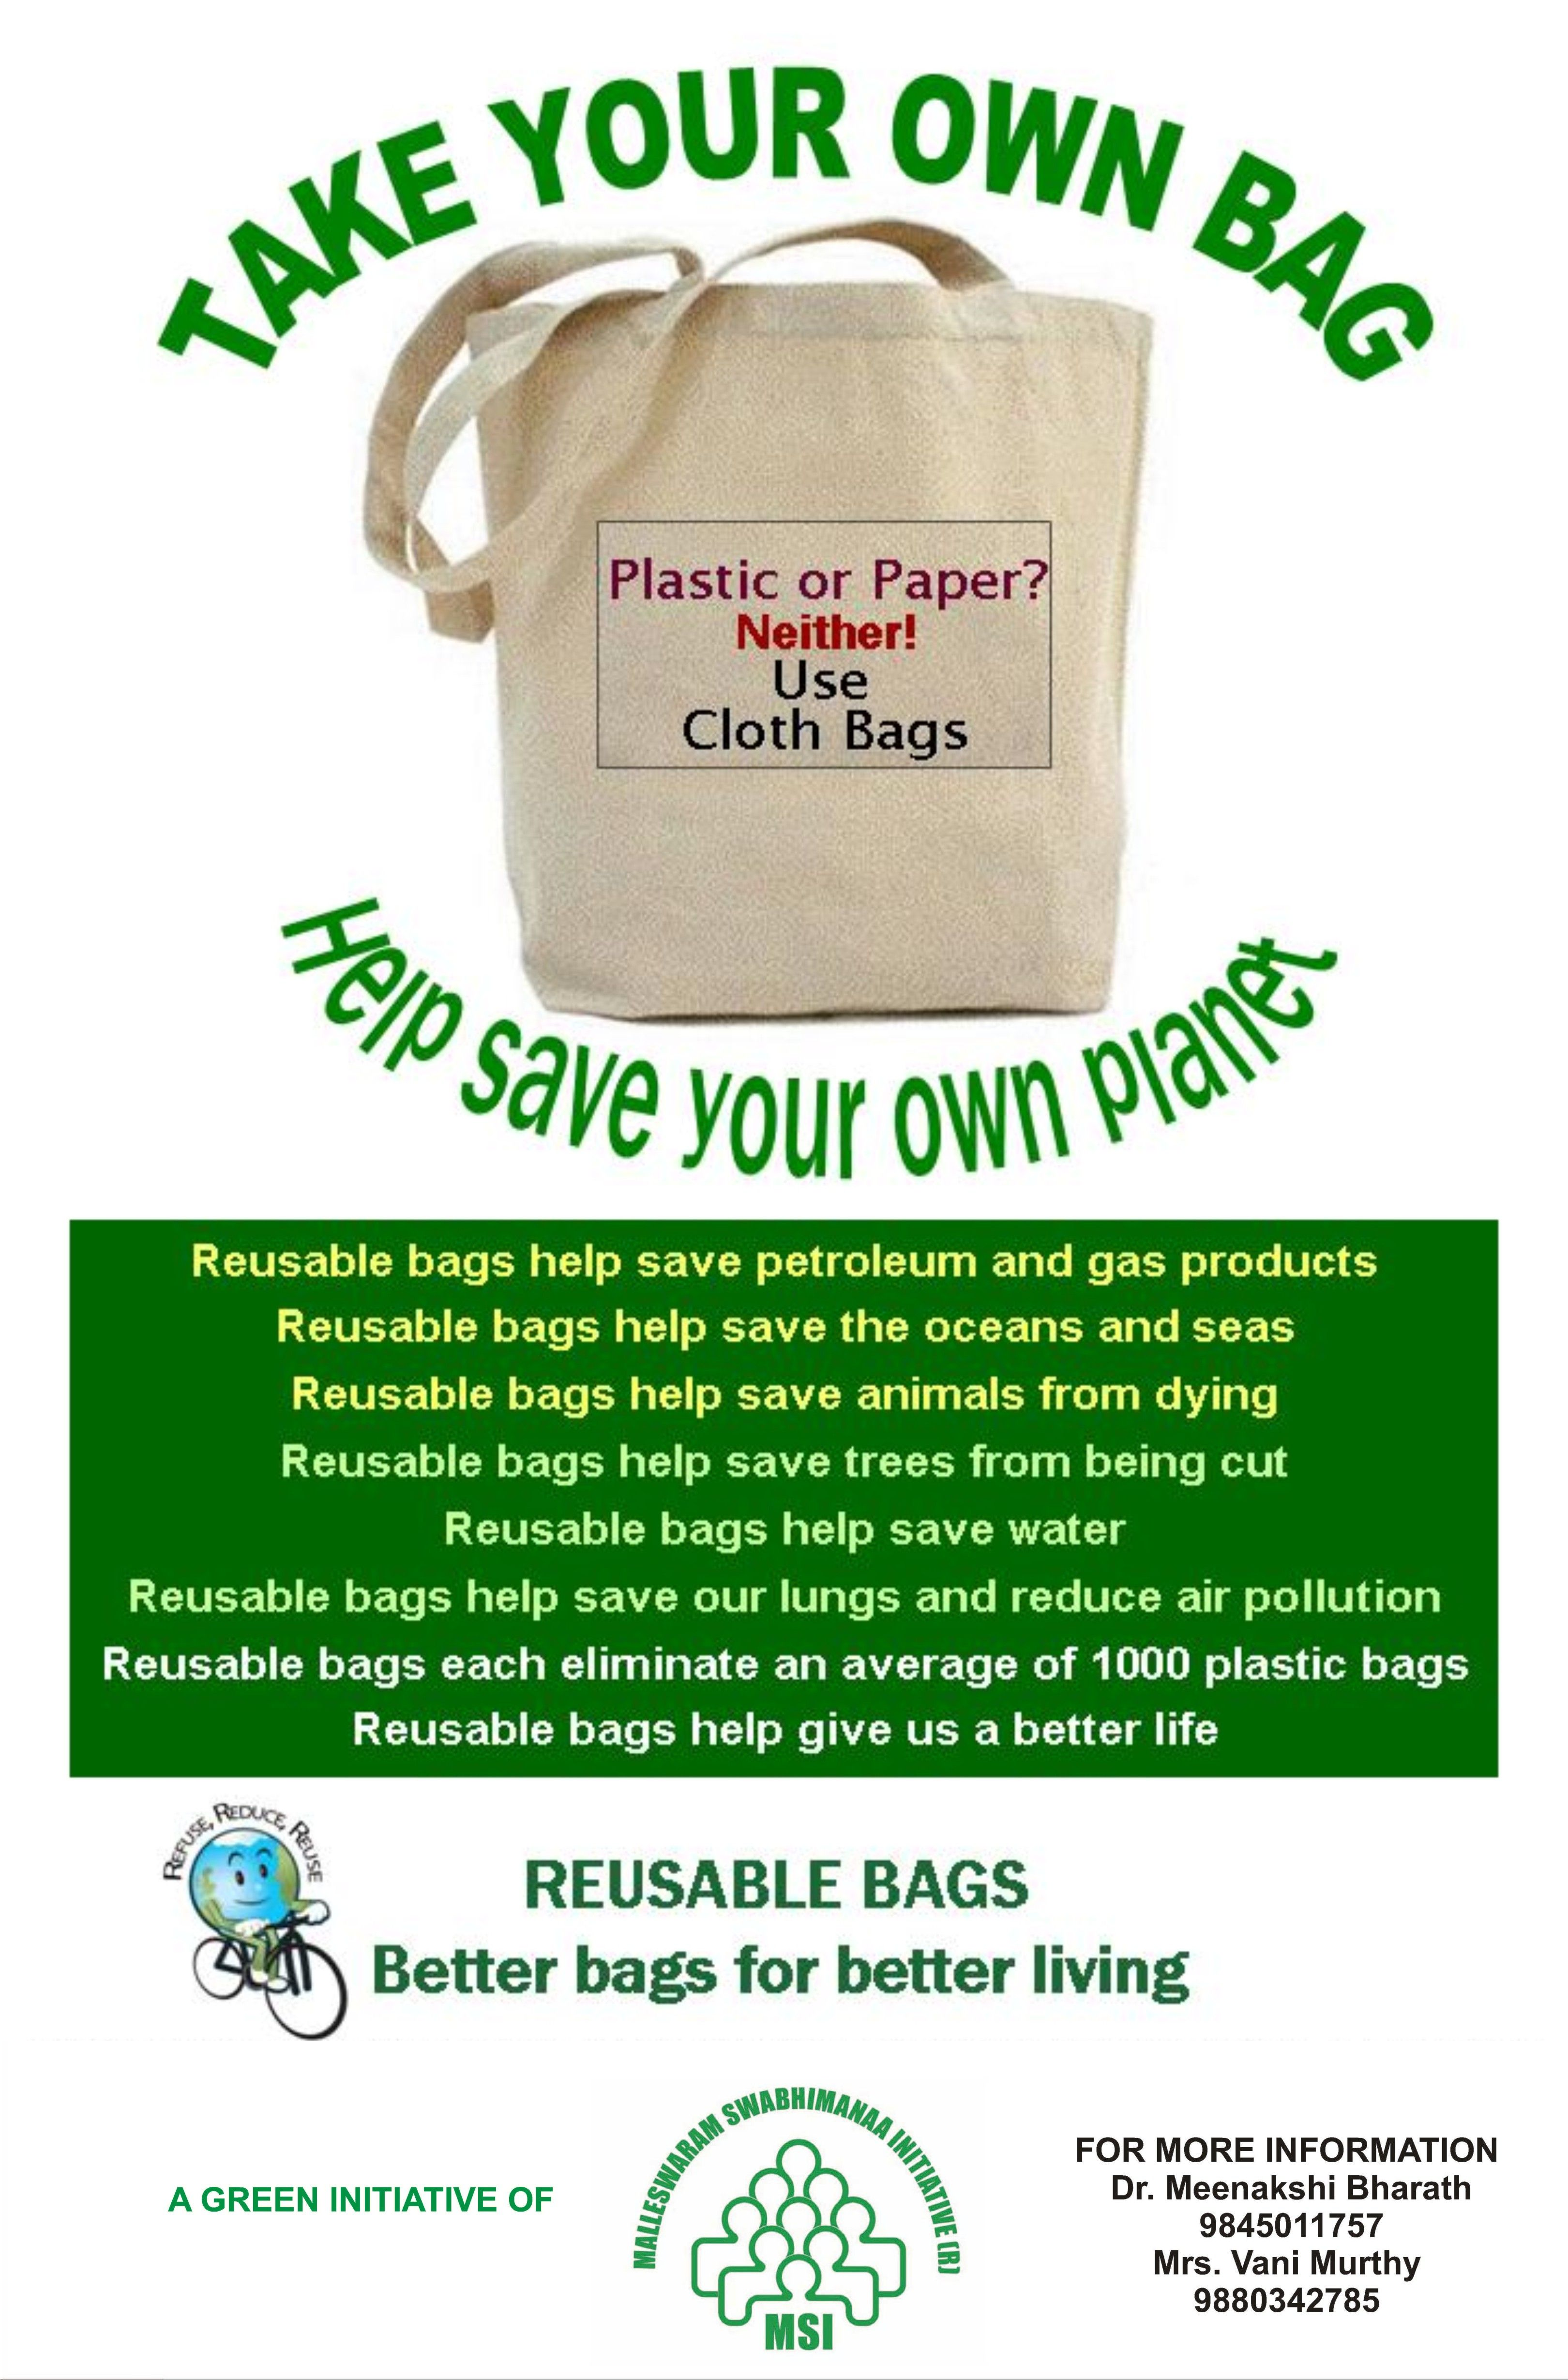 No To Plastic Bags Poster Google Search Amazing Board